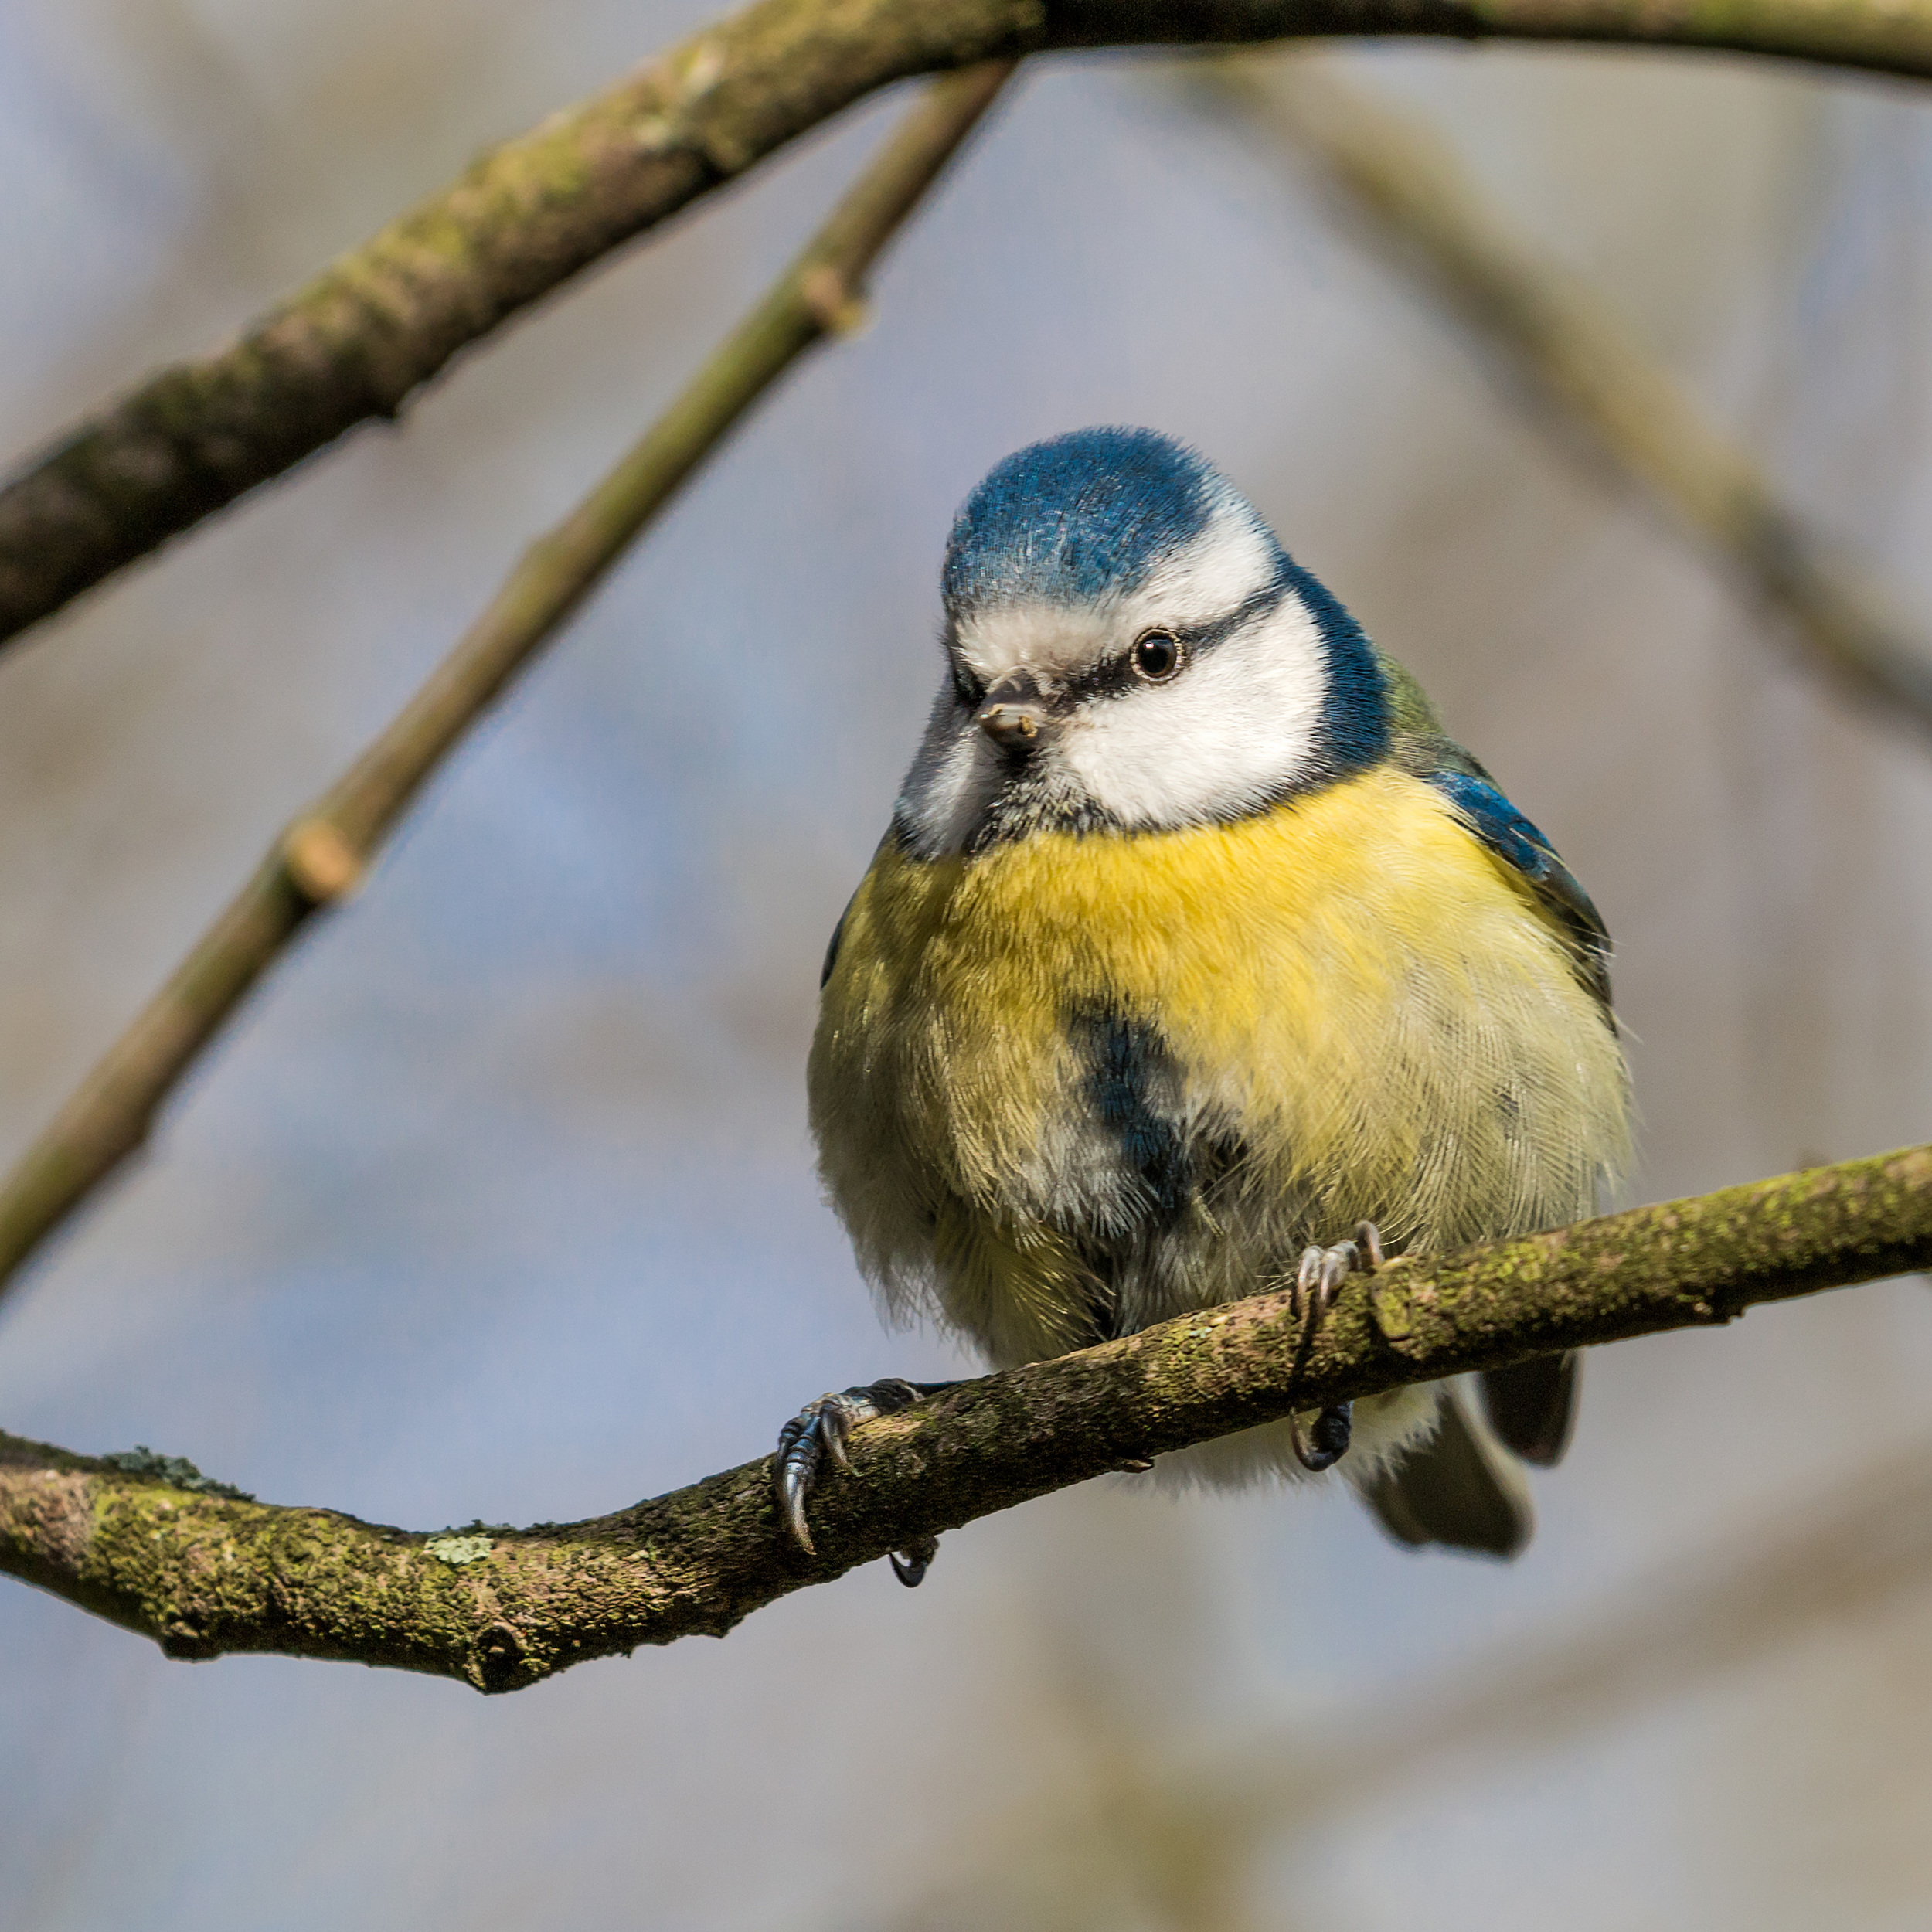 A plump Blue Tit